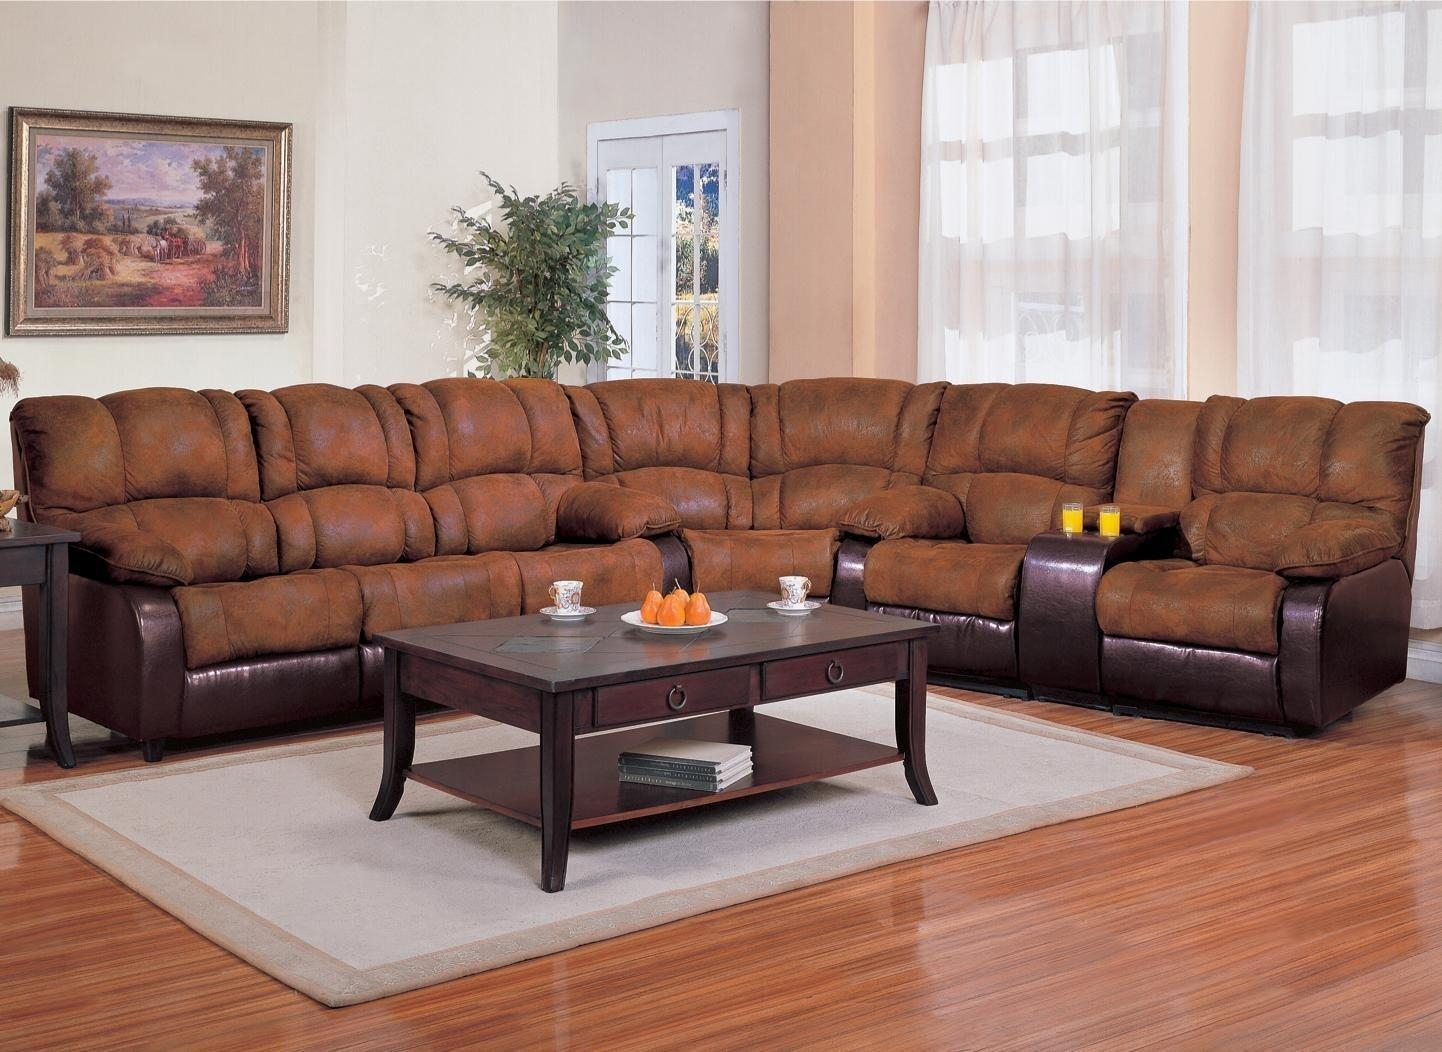 Furniture & Rug: Fancy Sectional Sleeper Sofa For Best Home Regarding Sectional With Recliner And Sleeper (View 3 of 20)